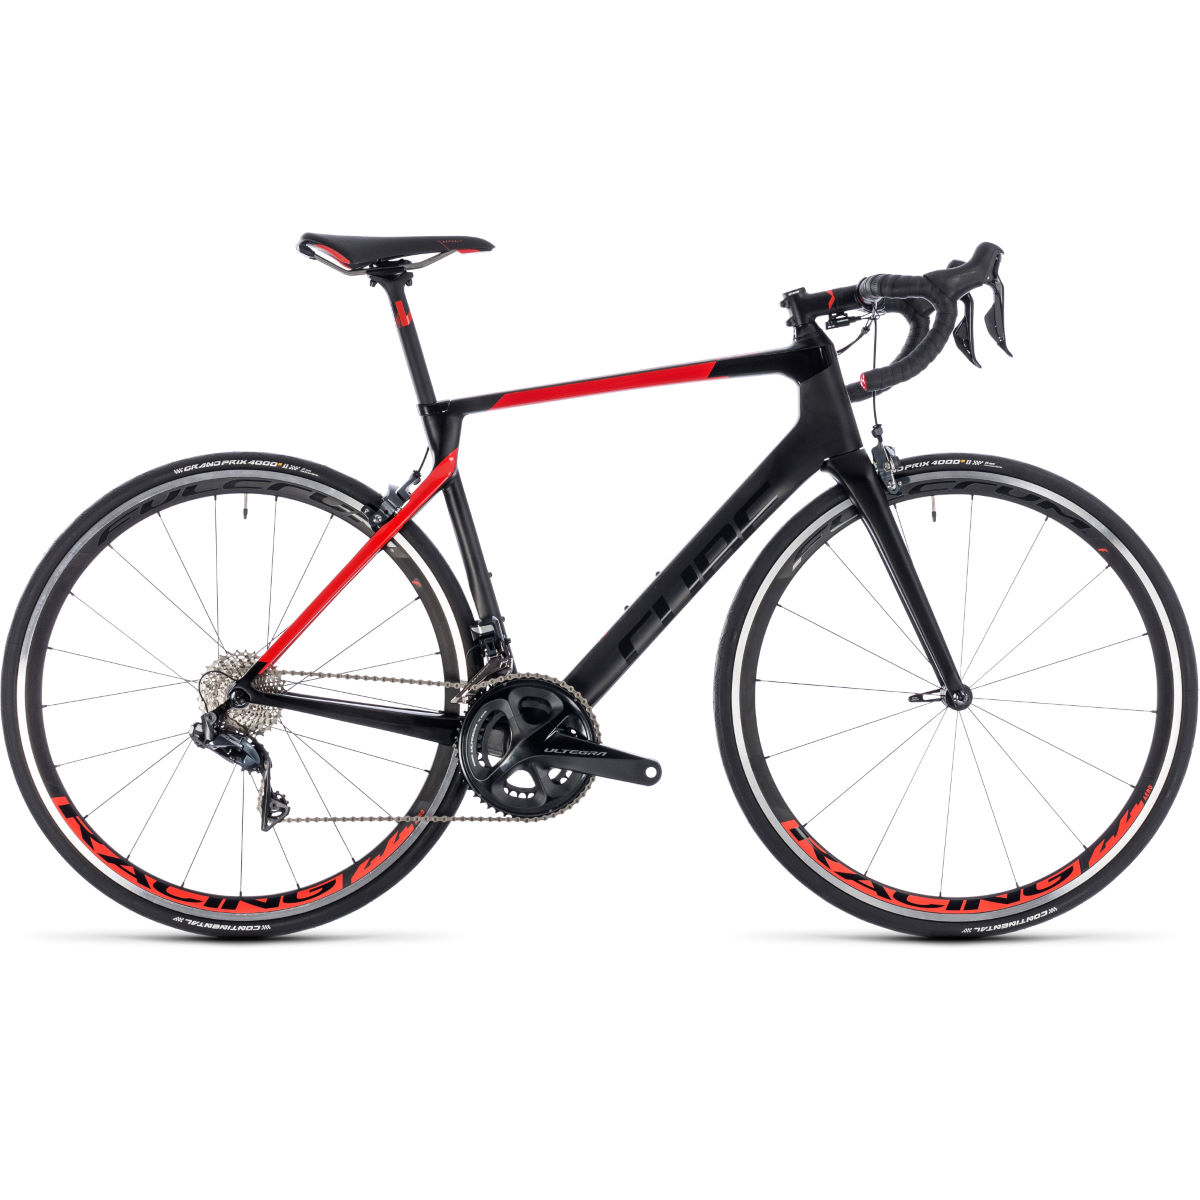 Cube Agree C:62 SL Road Bike - Bicicletas de carretera